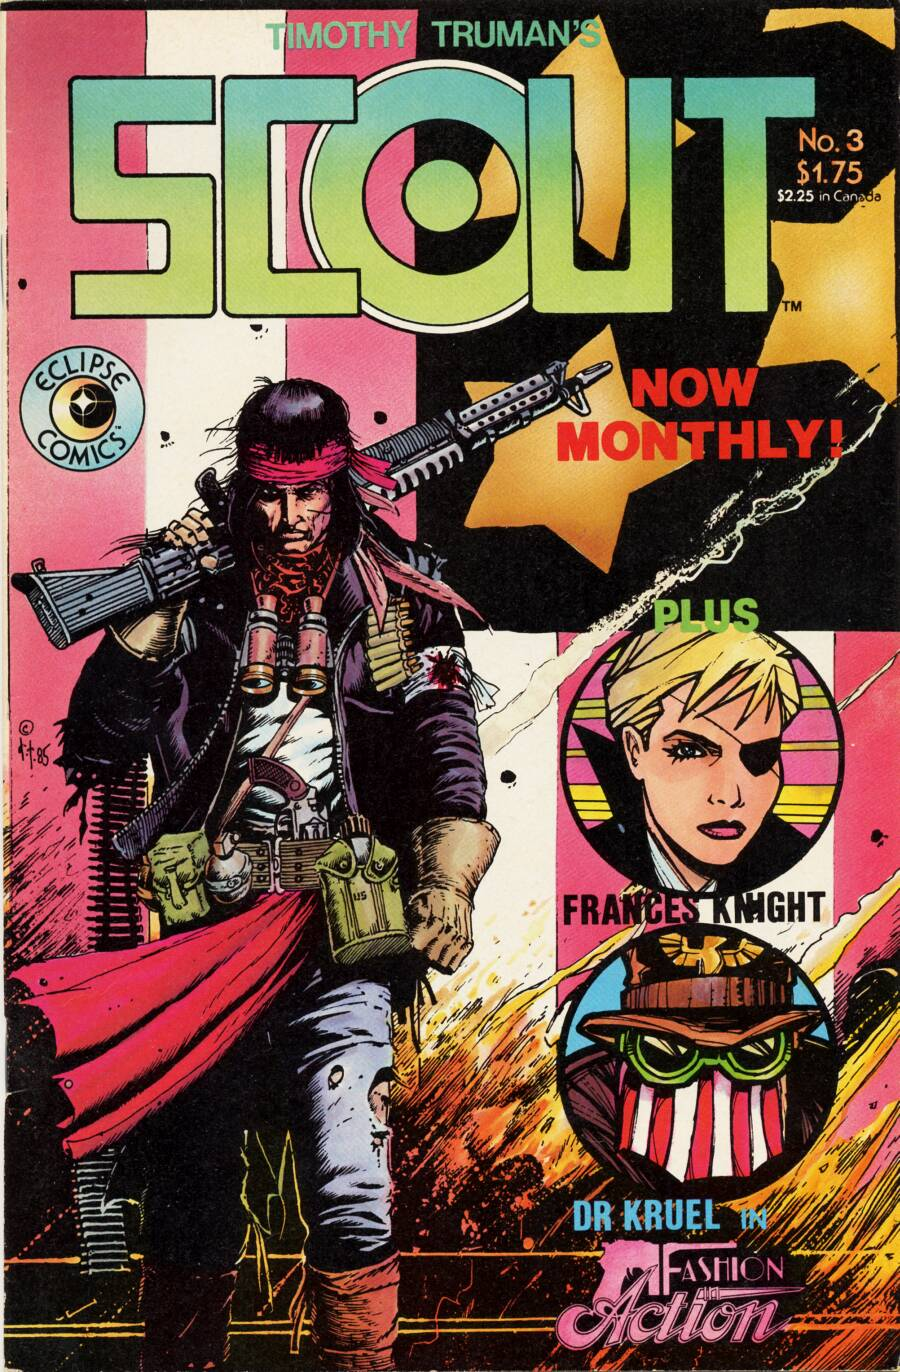 Read online Scout comic -  Issue #3 - 1